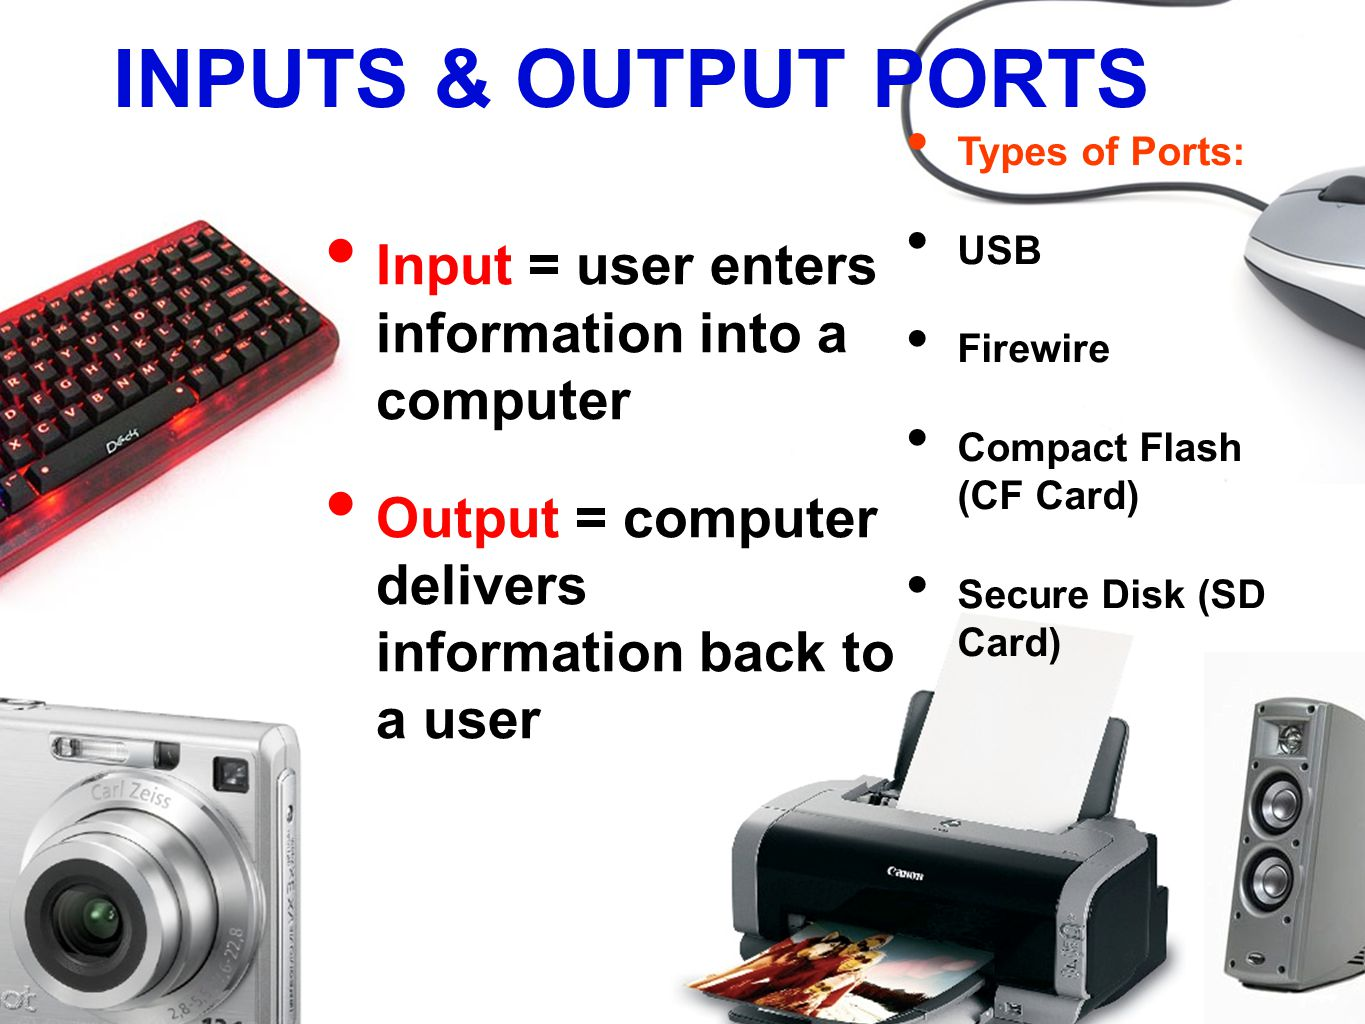 INPUTS & OUTPUT PORTS Input = user enters information into a computer Output = computer delivers information back to a user Types of Ports: USB Firewire Compact Flash (CF Card) Secure Disk (SD Card)